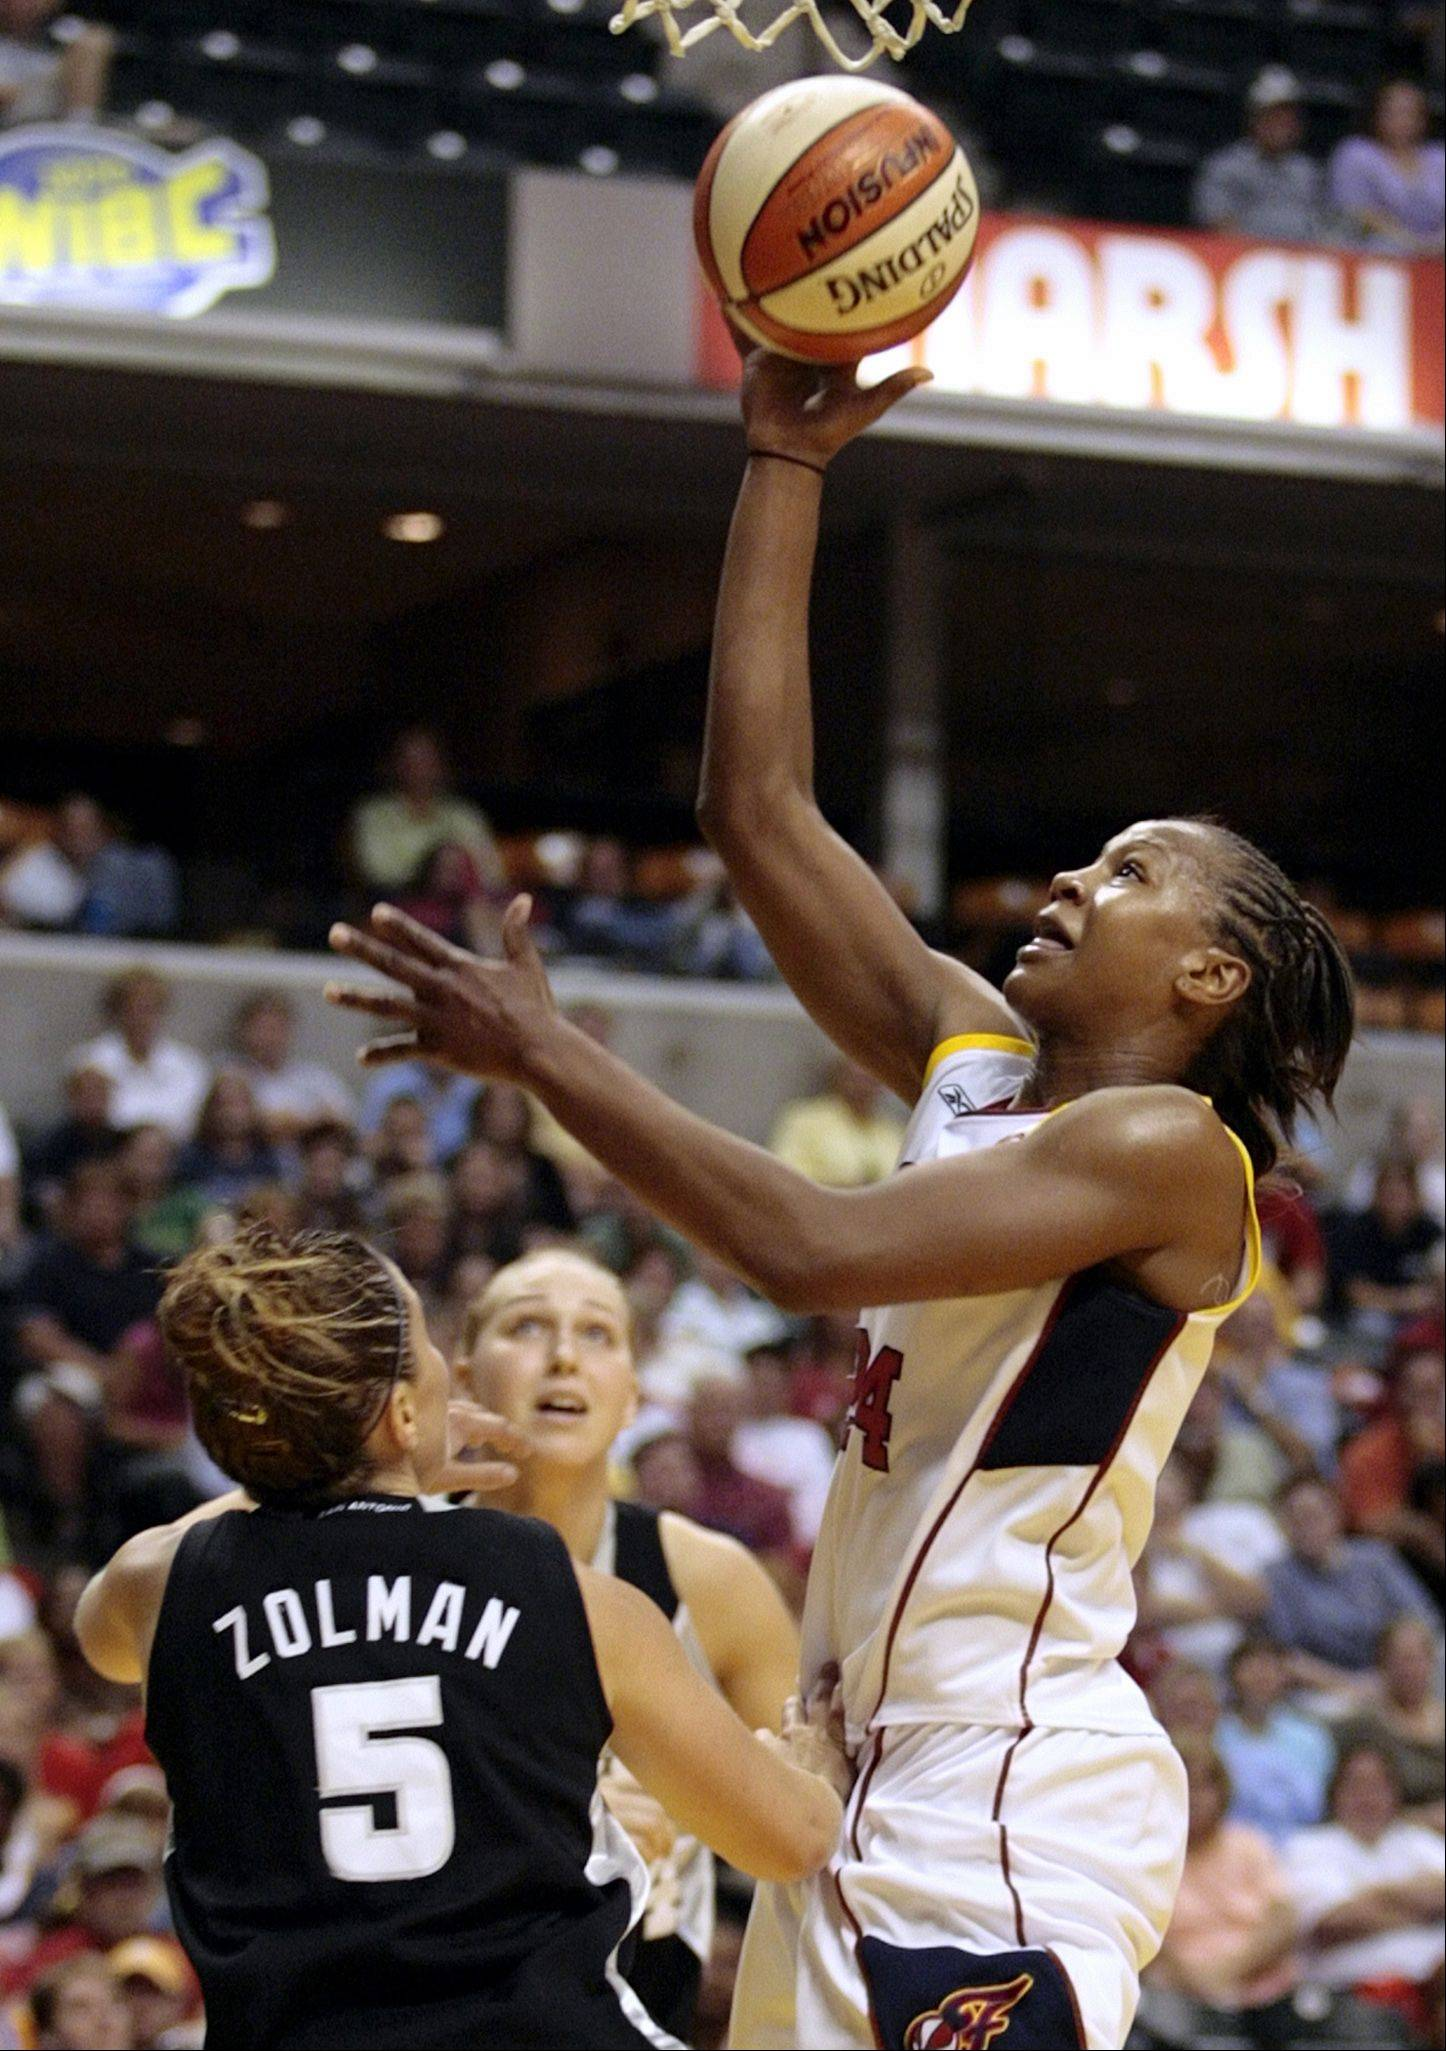 For Indiana Fever forward Tamika Catchings, she learned about volleyball before basketball.